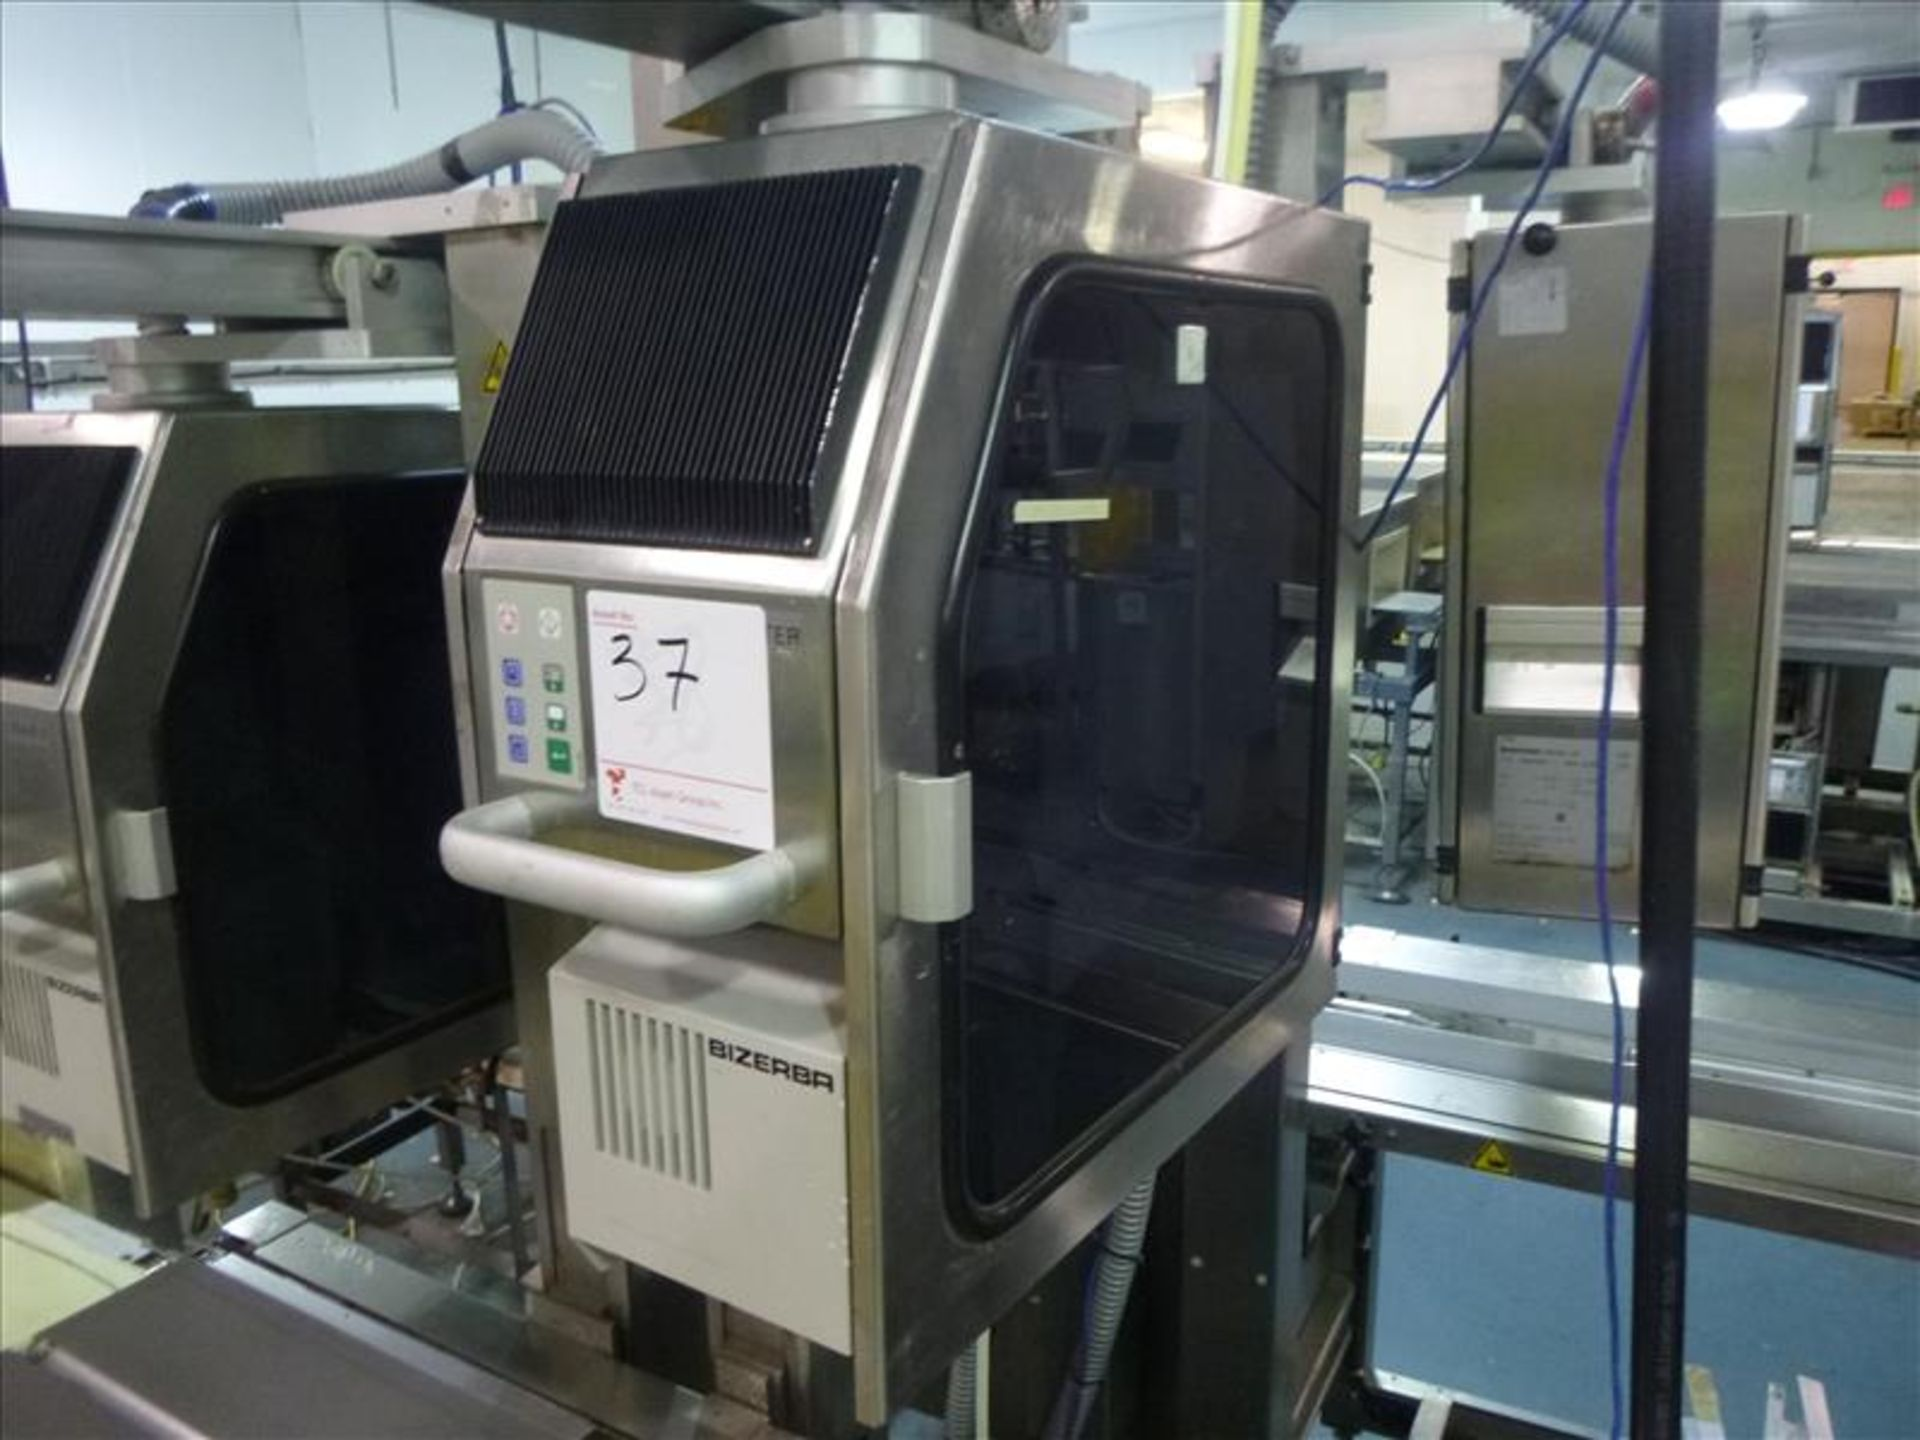 Lot 37 - Bizerba in-line check-weigher system (MASTER) w/ Bizerba GS label printer and Bizerba AB controller,